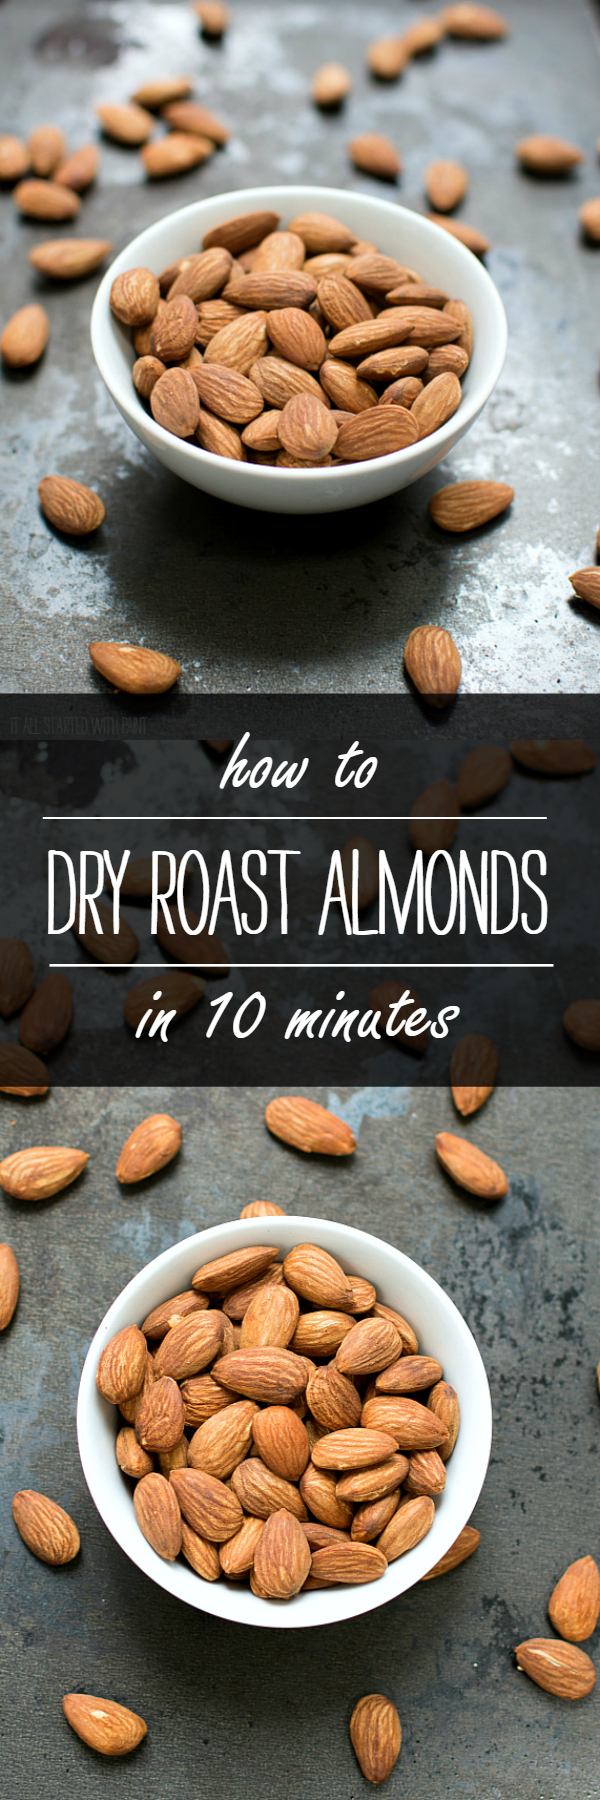 Dry Roasted Almonds: How To Easily Dry Roast in 10 Minutes